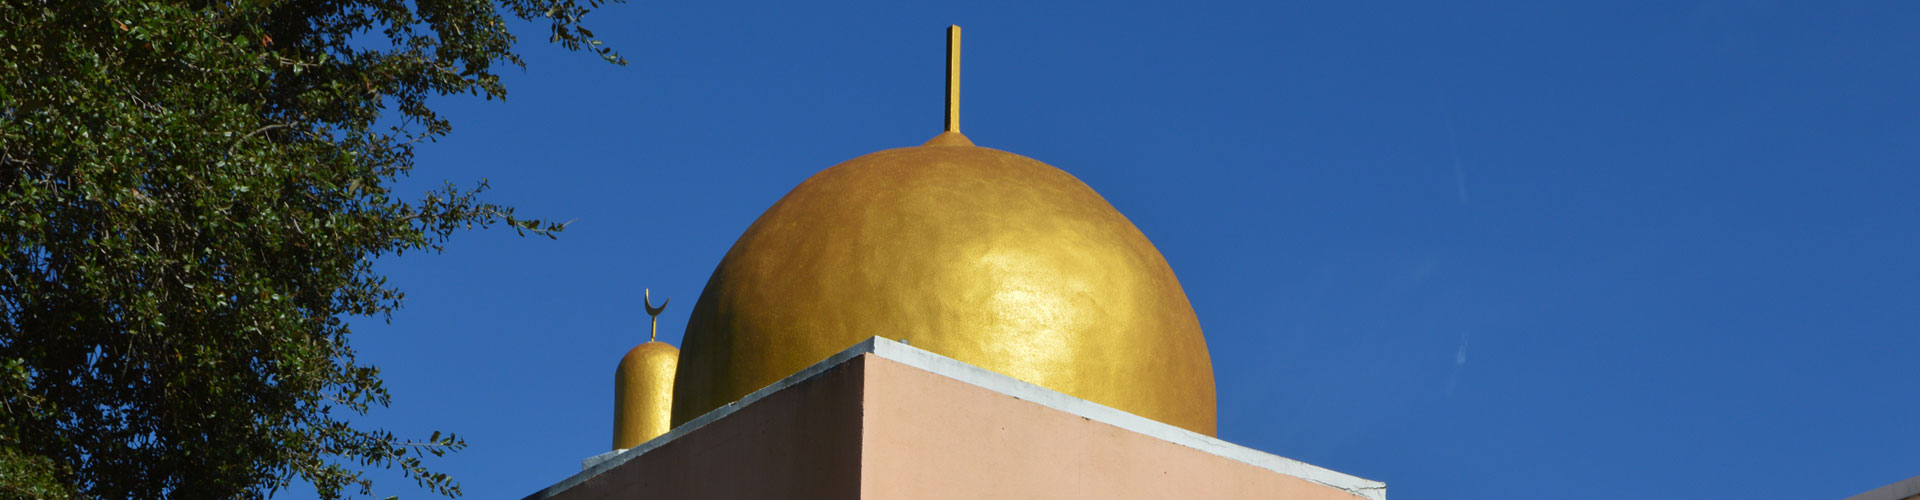 Masjid taqwa - Islamic Center of Osceola County Kissimmee